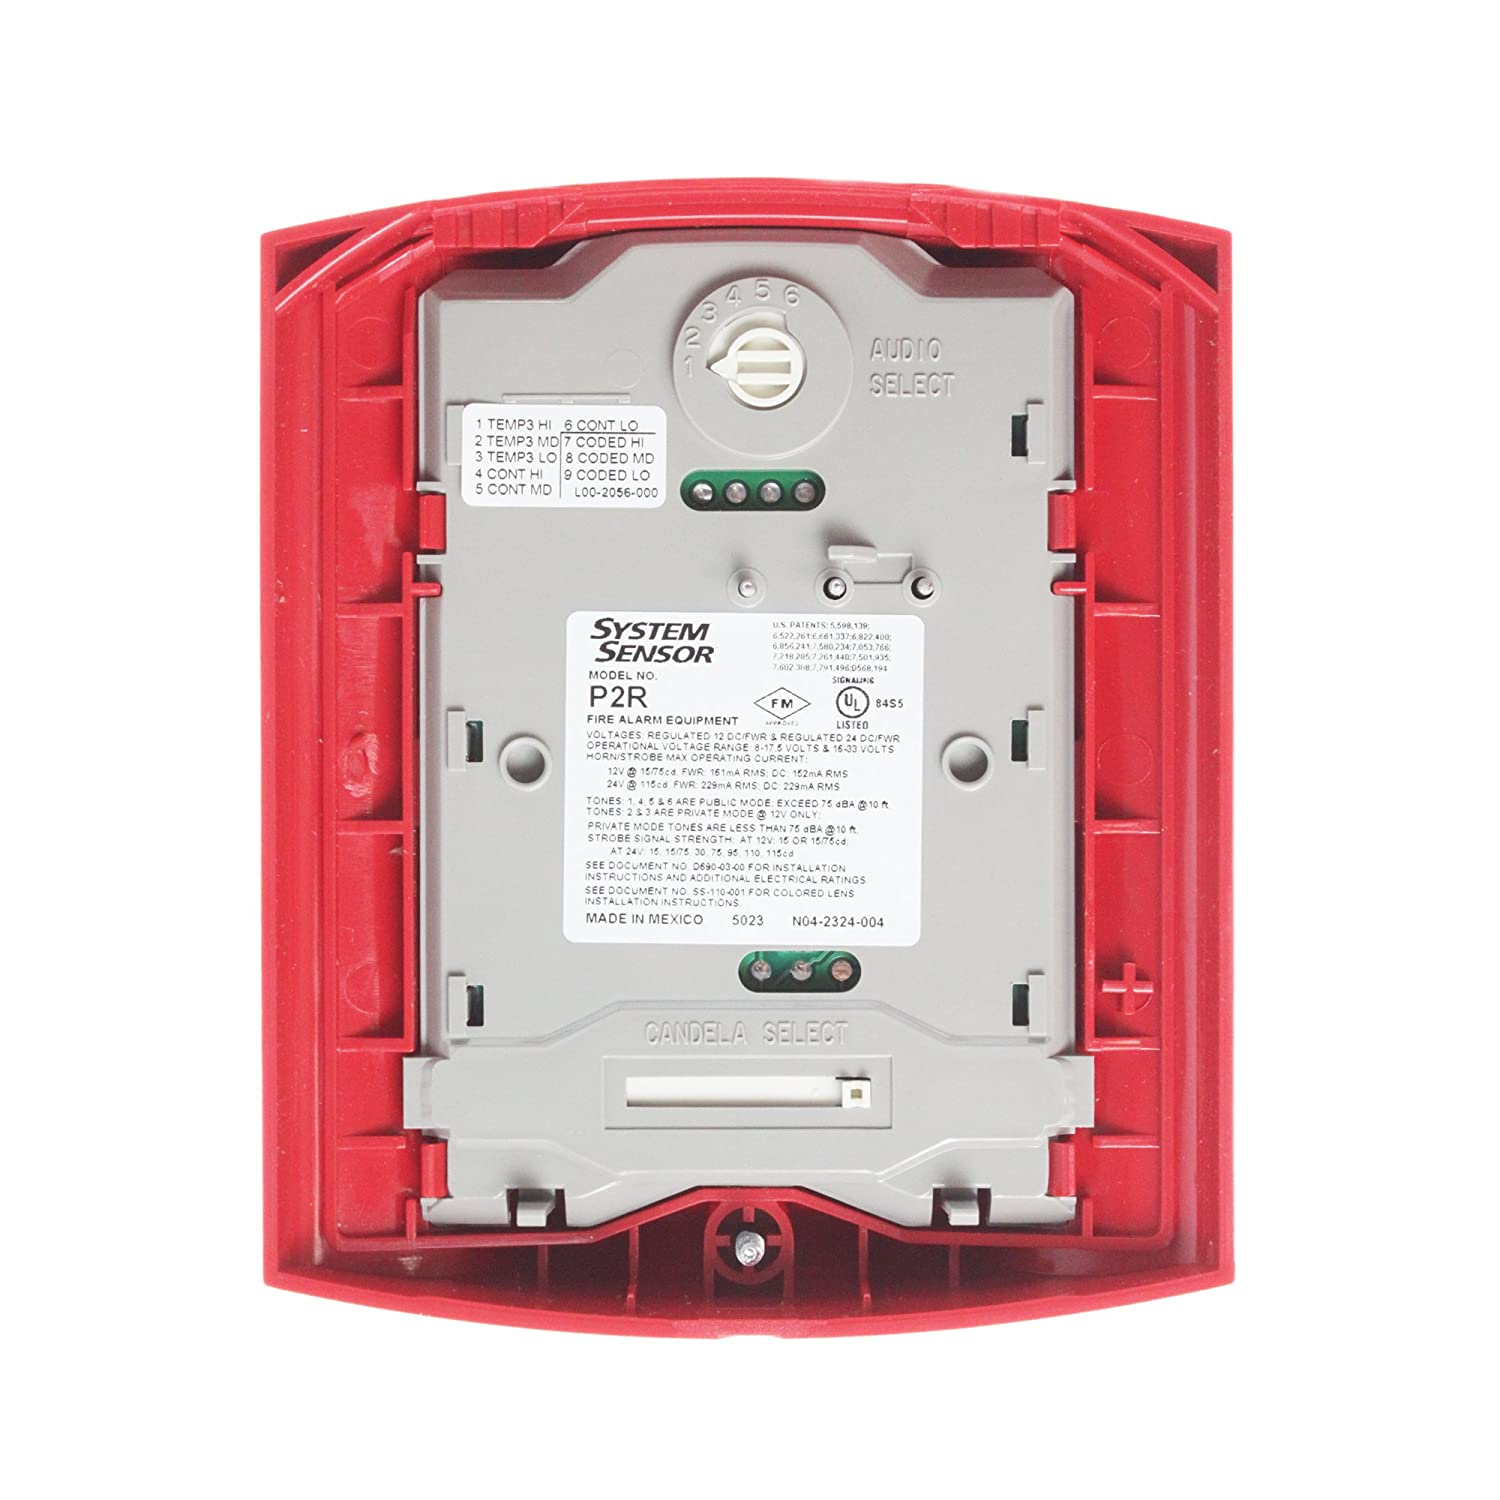 Horn Strobe, Wall, 2-Wire, Std Candela, Red - Fire Alarm - Amazon.com